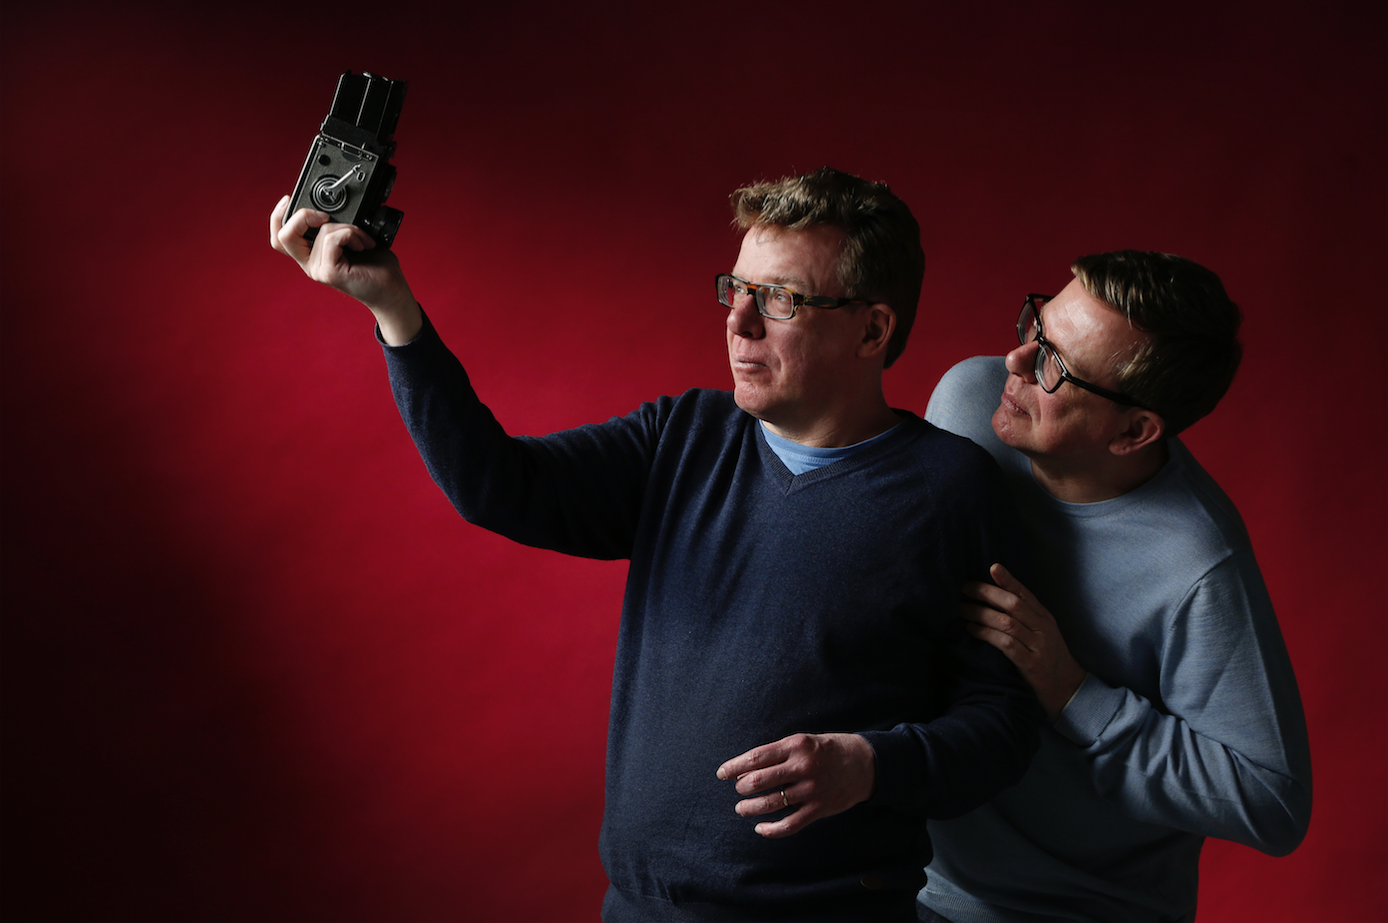 Gears For Fears: The Proclaimers interview